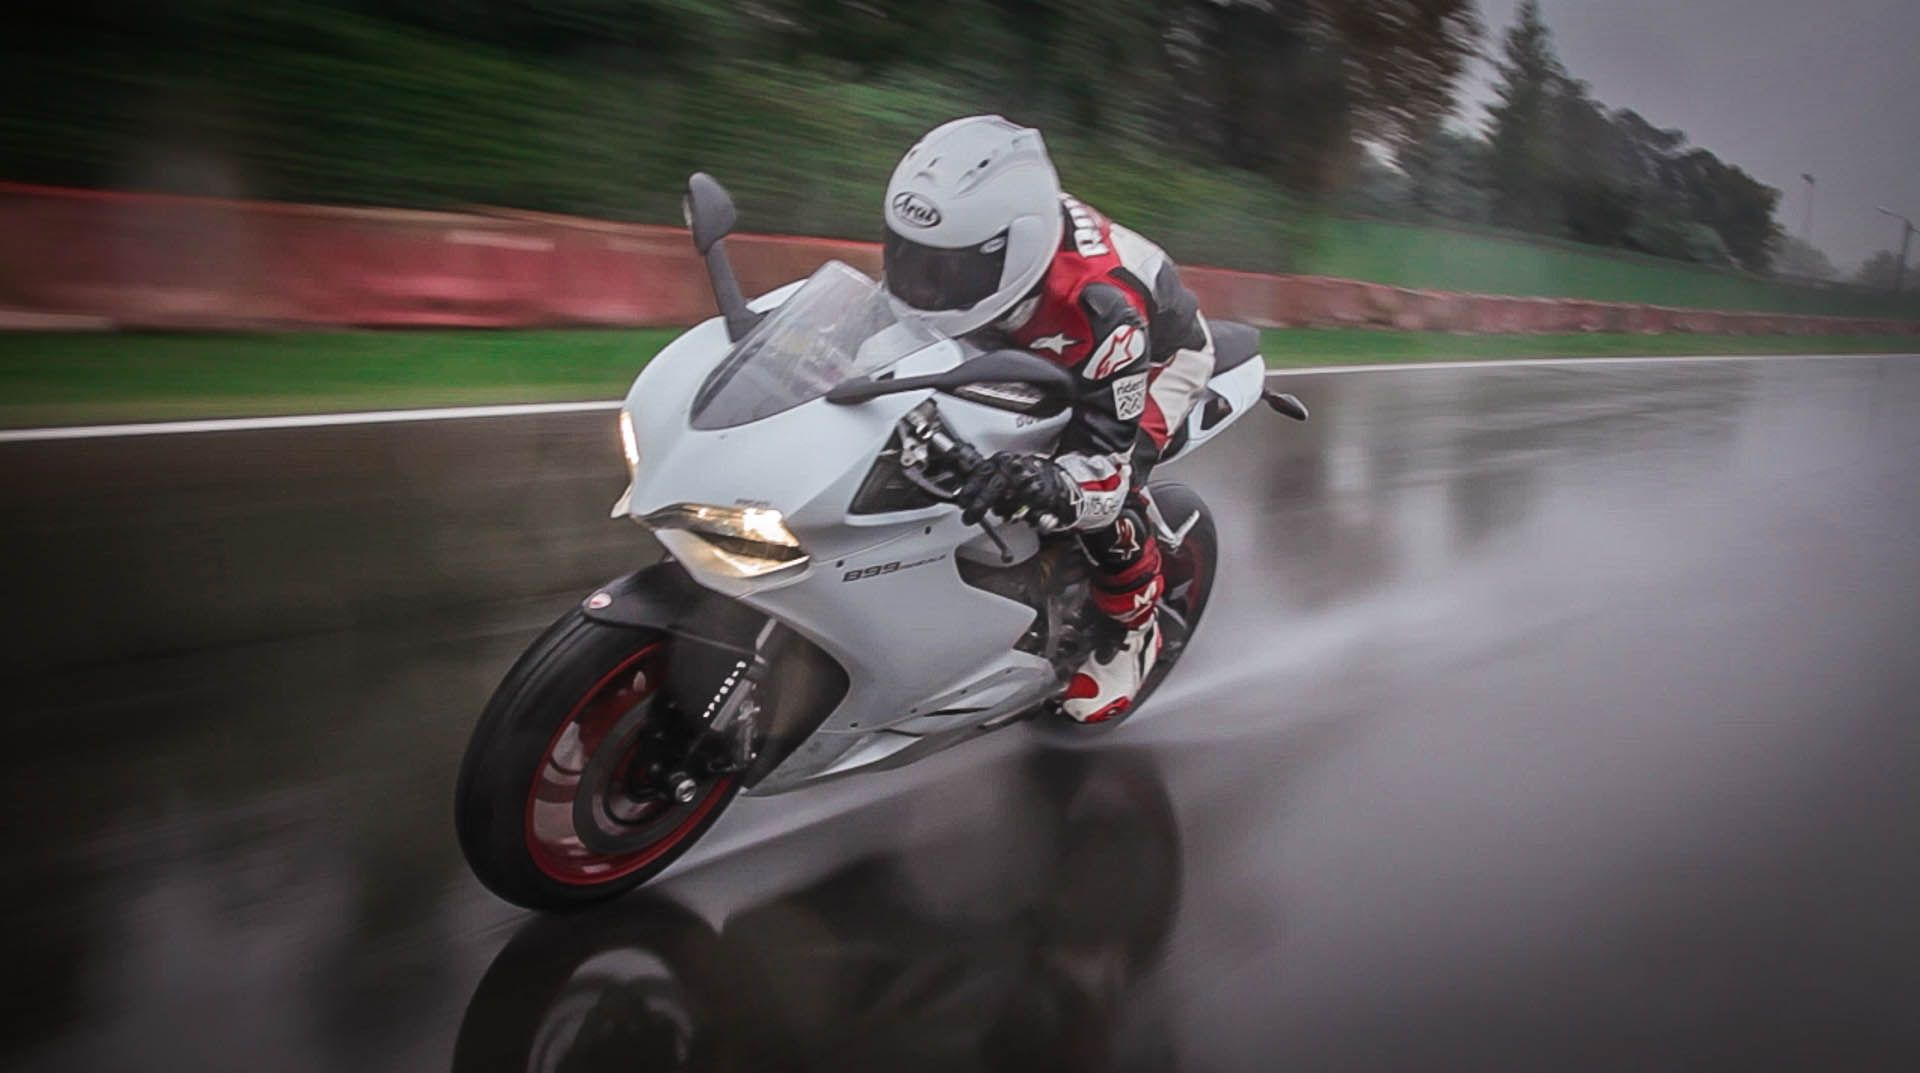 In The Rain With A 899 Panigale Panigale Ducati Hd Images